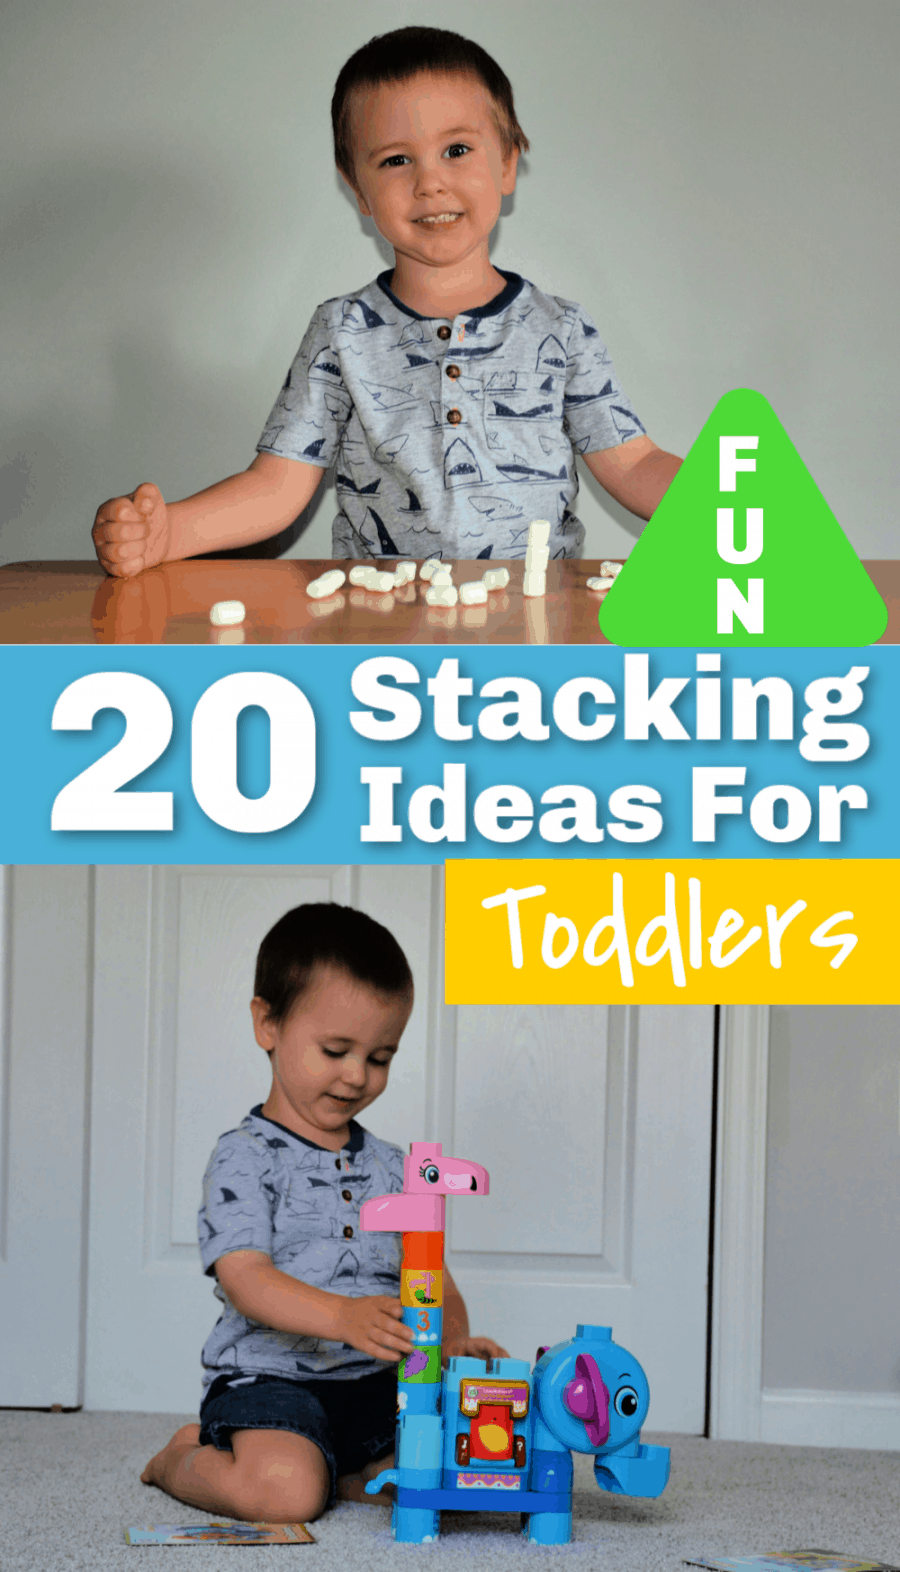 20 Stacking Ideas For Toddlers